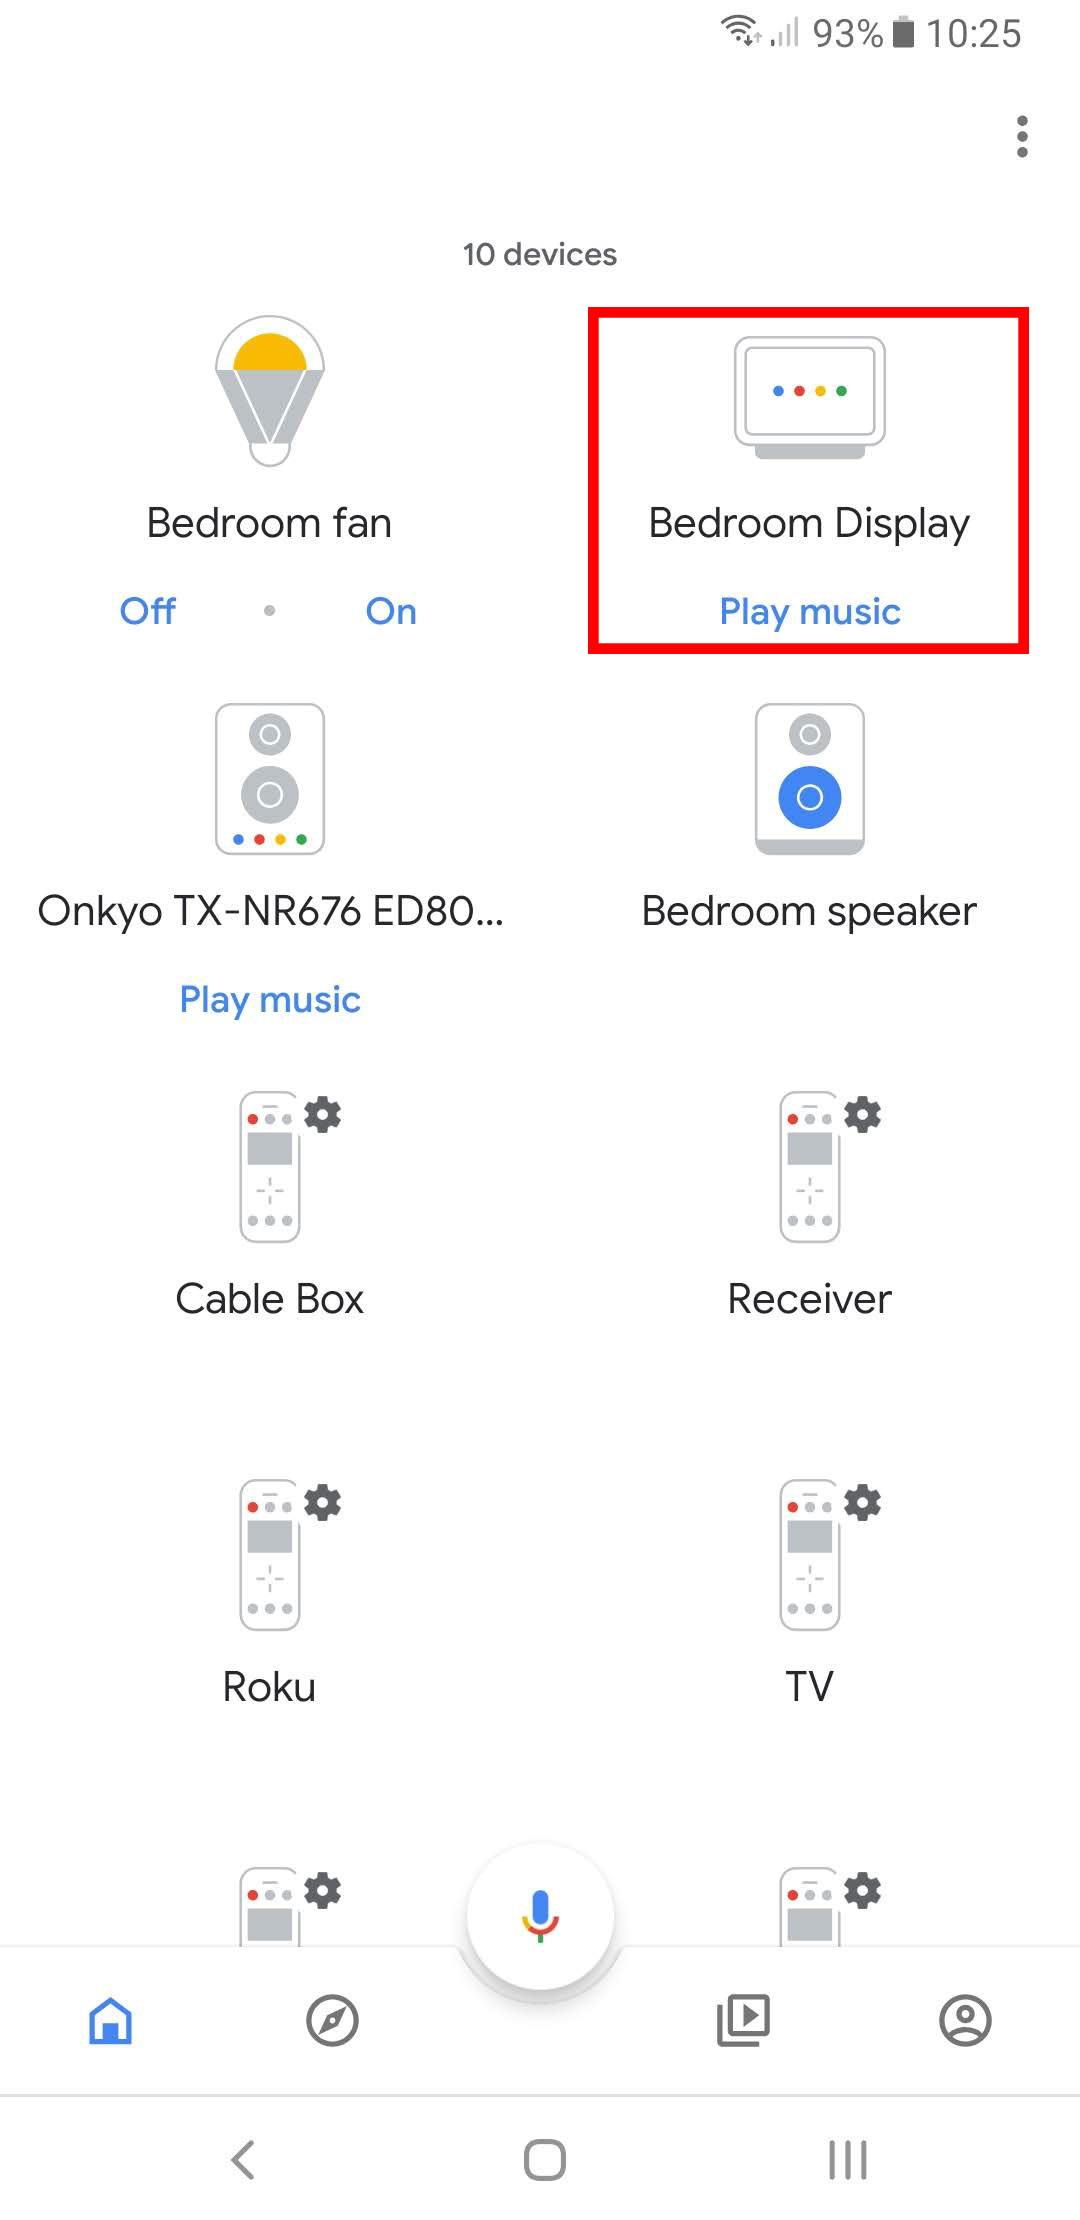 How to set a music alarm with Google Home or a Google